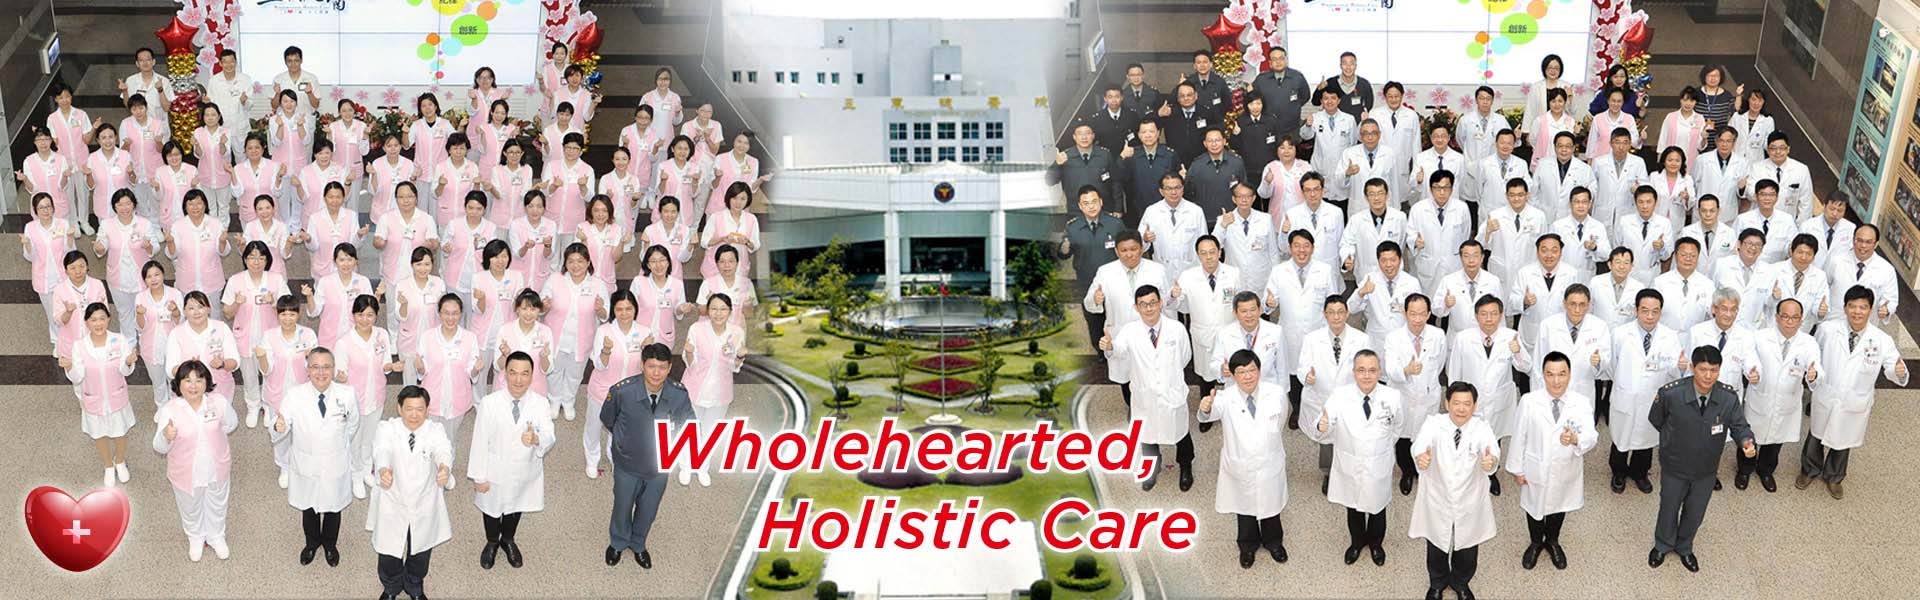 Wholehearted_Holistic_Care